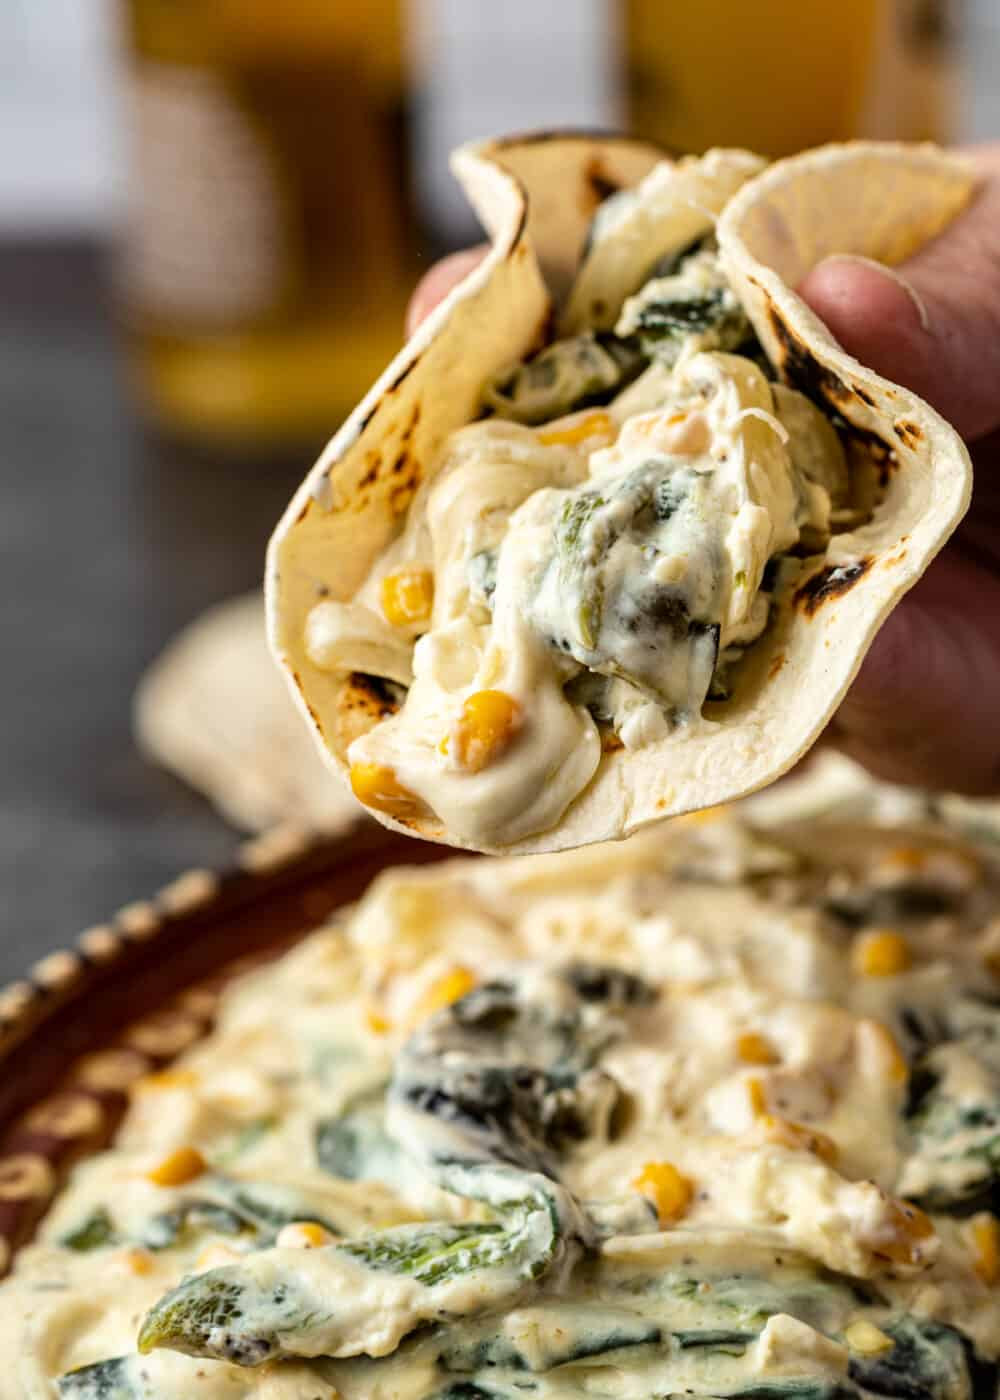 man's hand holding soft taco filled with slices of poblanos in cream sauce